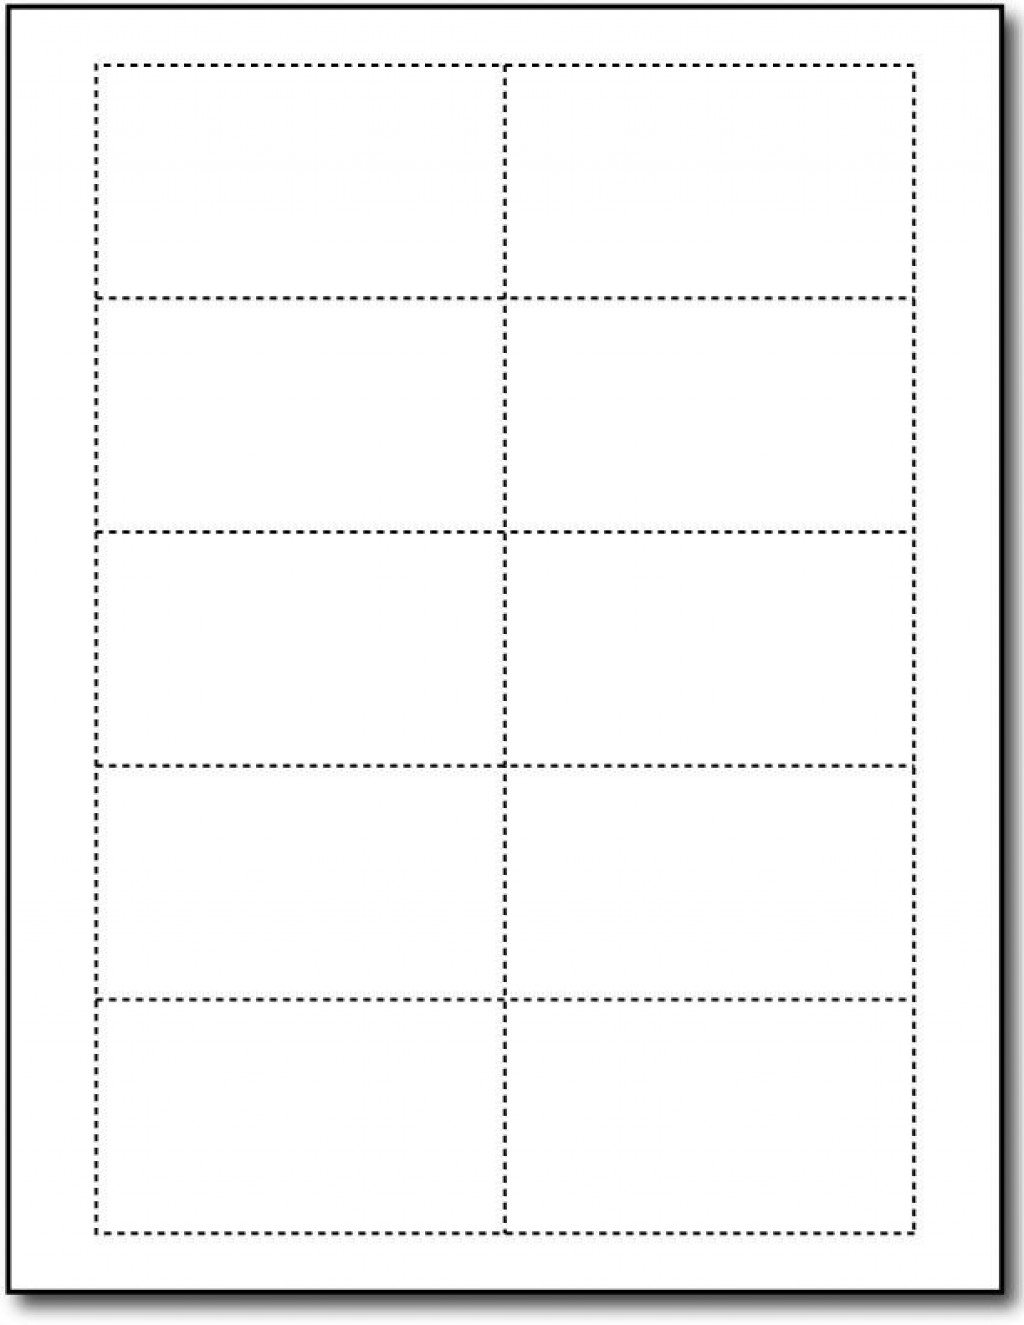 Word Busines Card Template Free Simple Download  Microsoft 2007 Double Sided BlankLarge